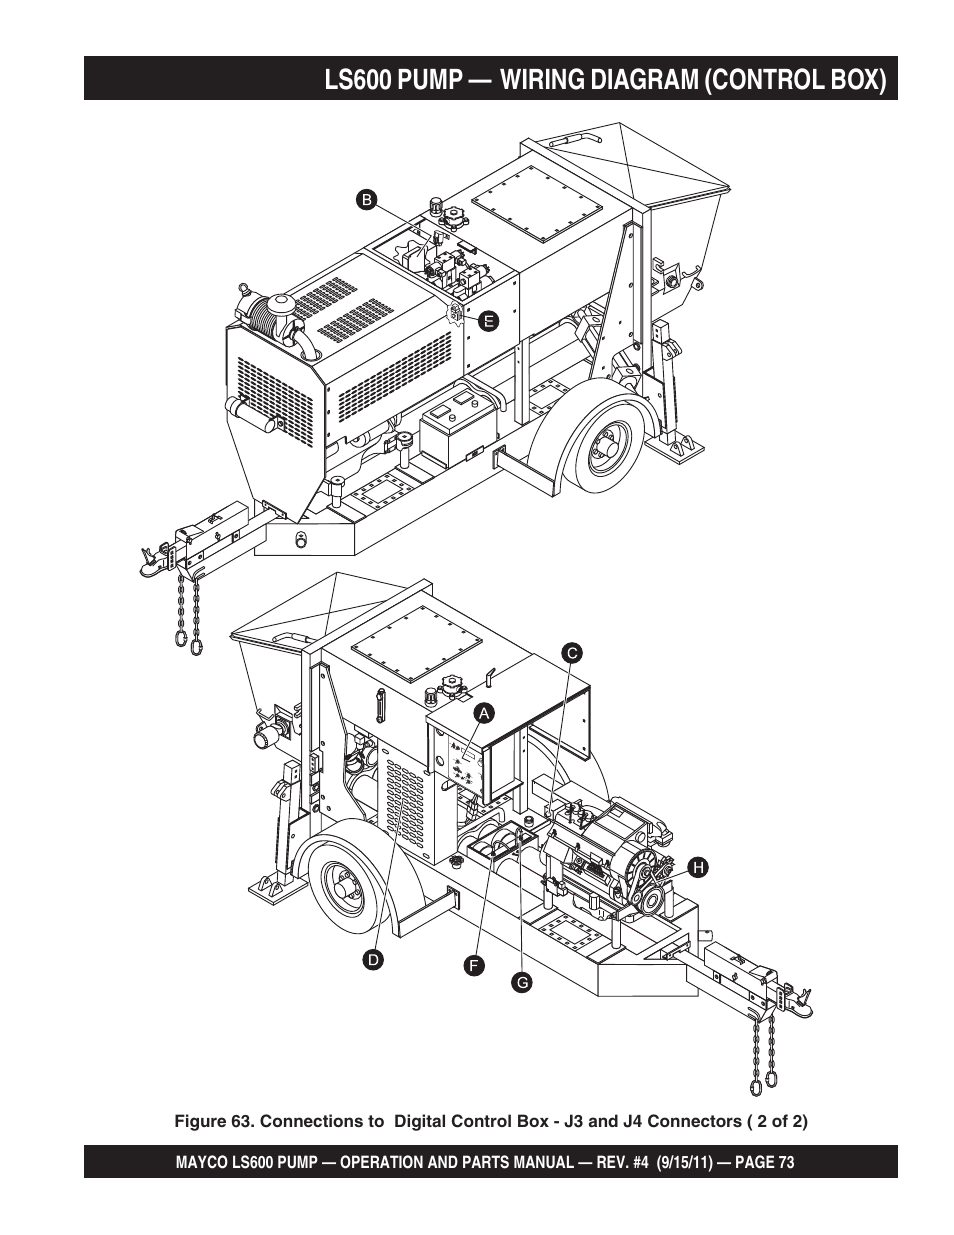 ls600 pump  u2014 wiring diagram  control box